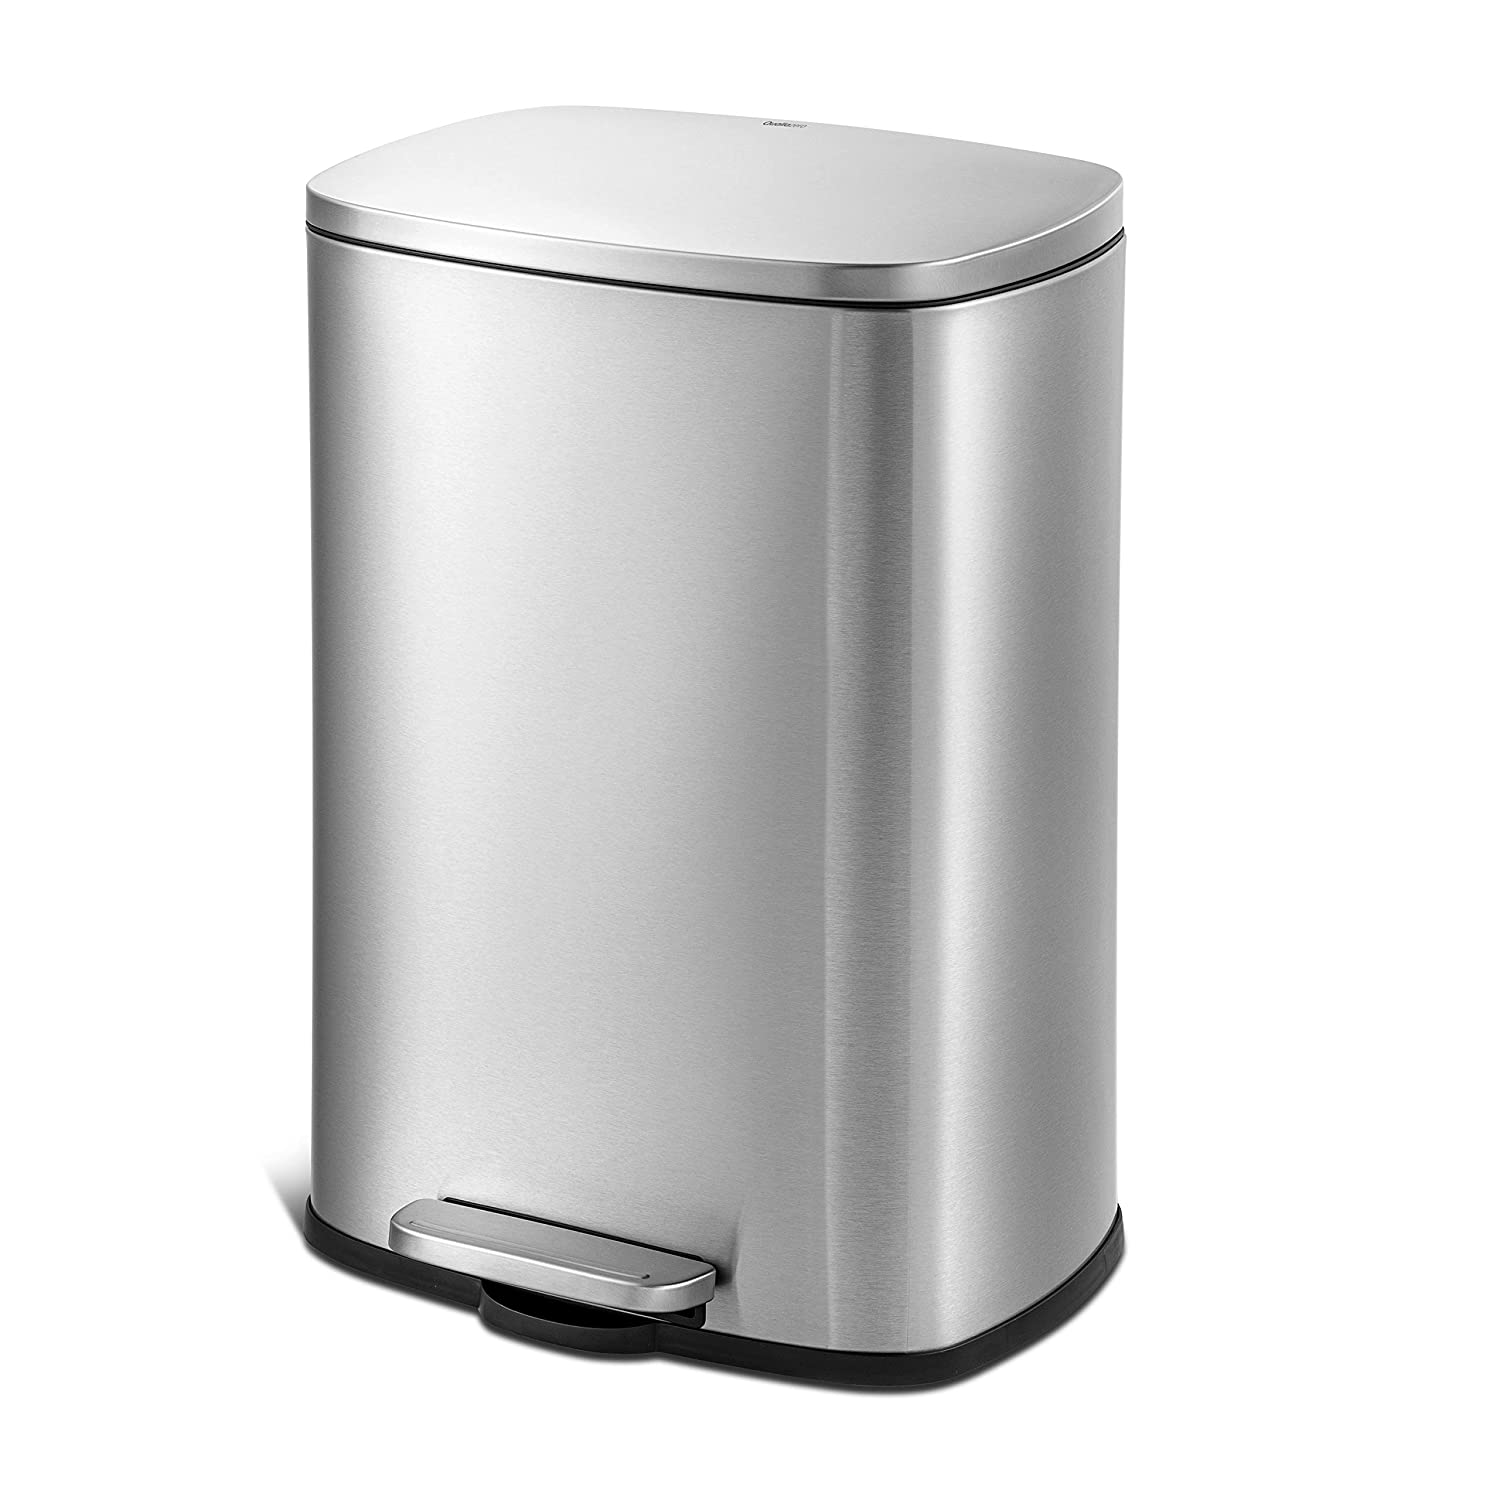 QUALIAZERO 50L 13Gal Heavy Duty Comme Hands-Free Steel Overseas parallel New life import regular item Stainless